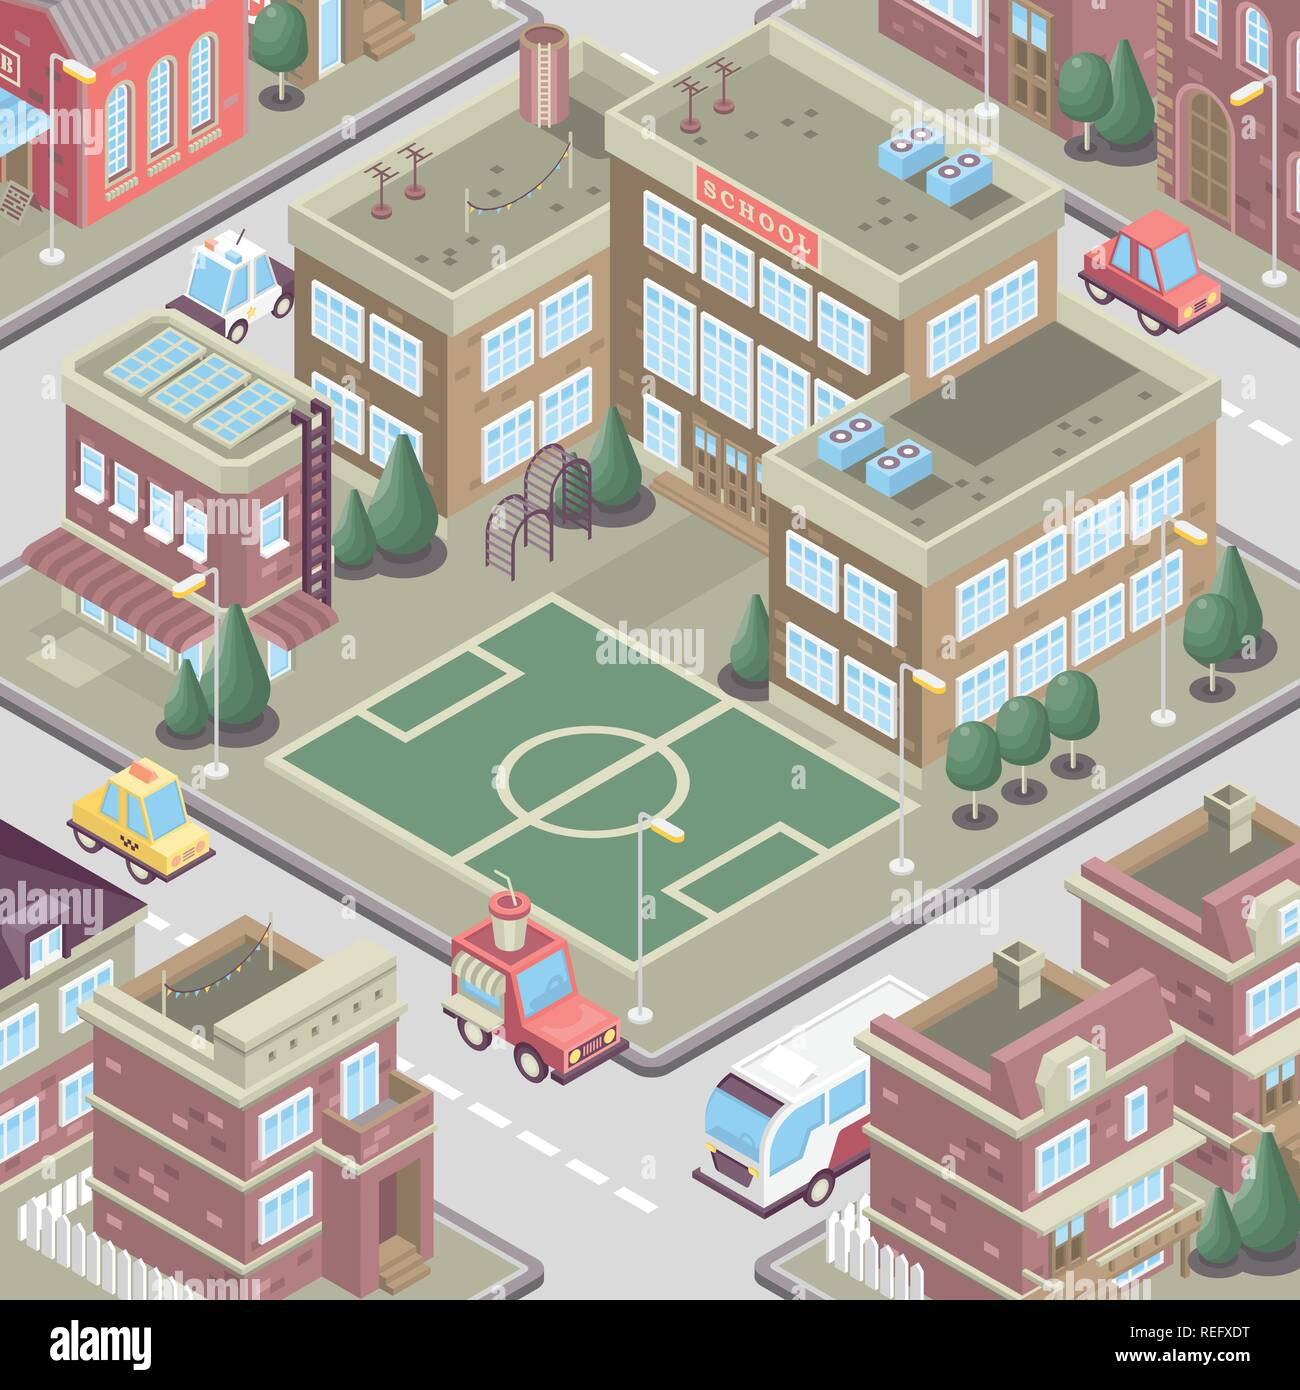 City district in isometric 3d style. Vector town. Set of buildings, houses, townhouses, multi-family homes, shop, bar, school, hospital, car parking. Stock Vector